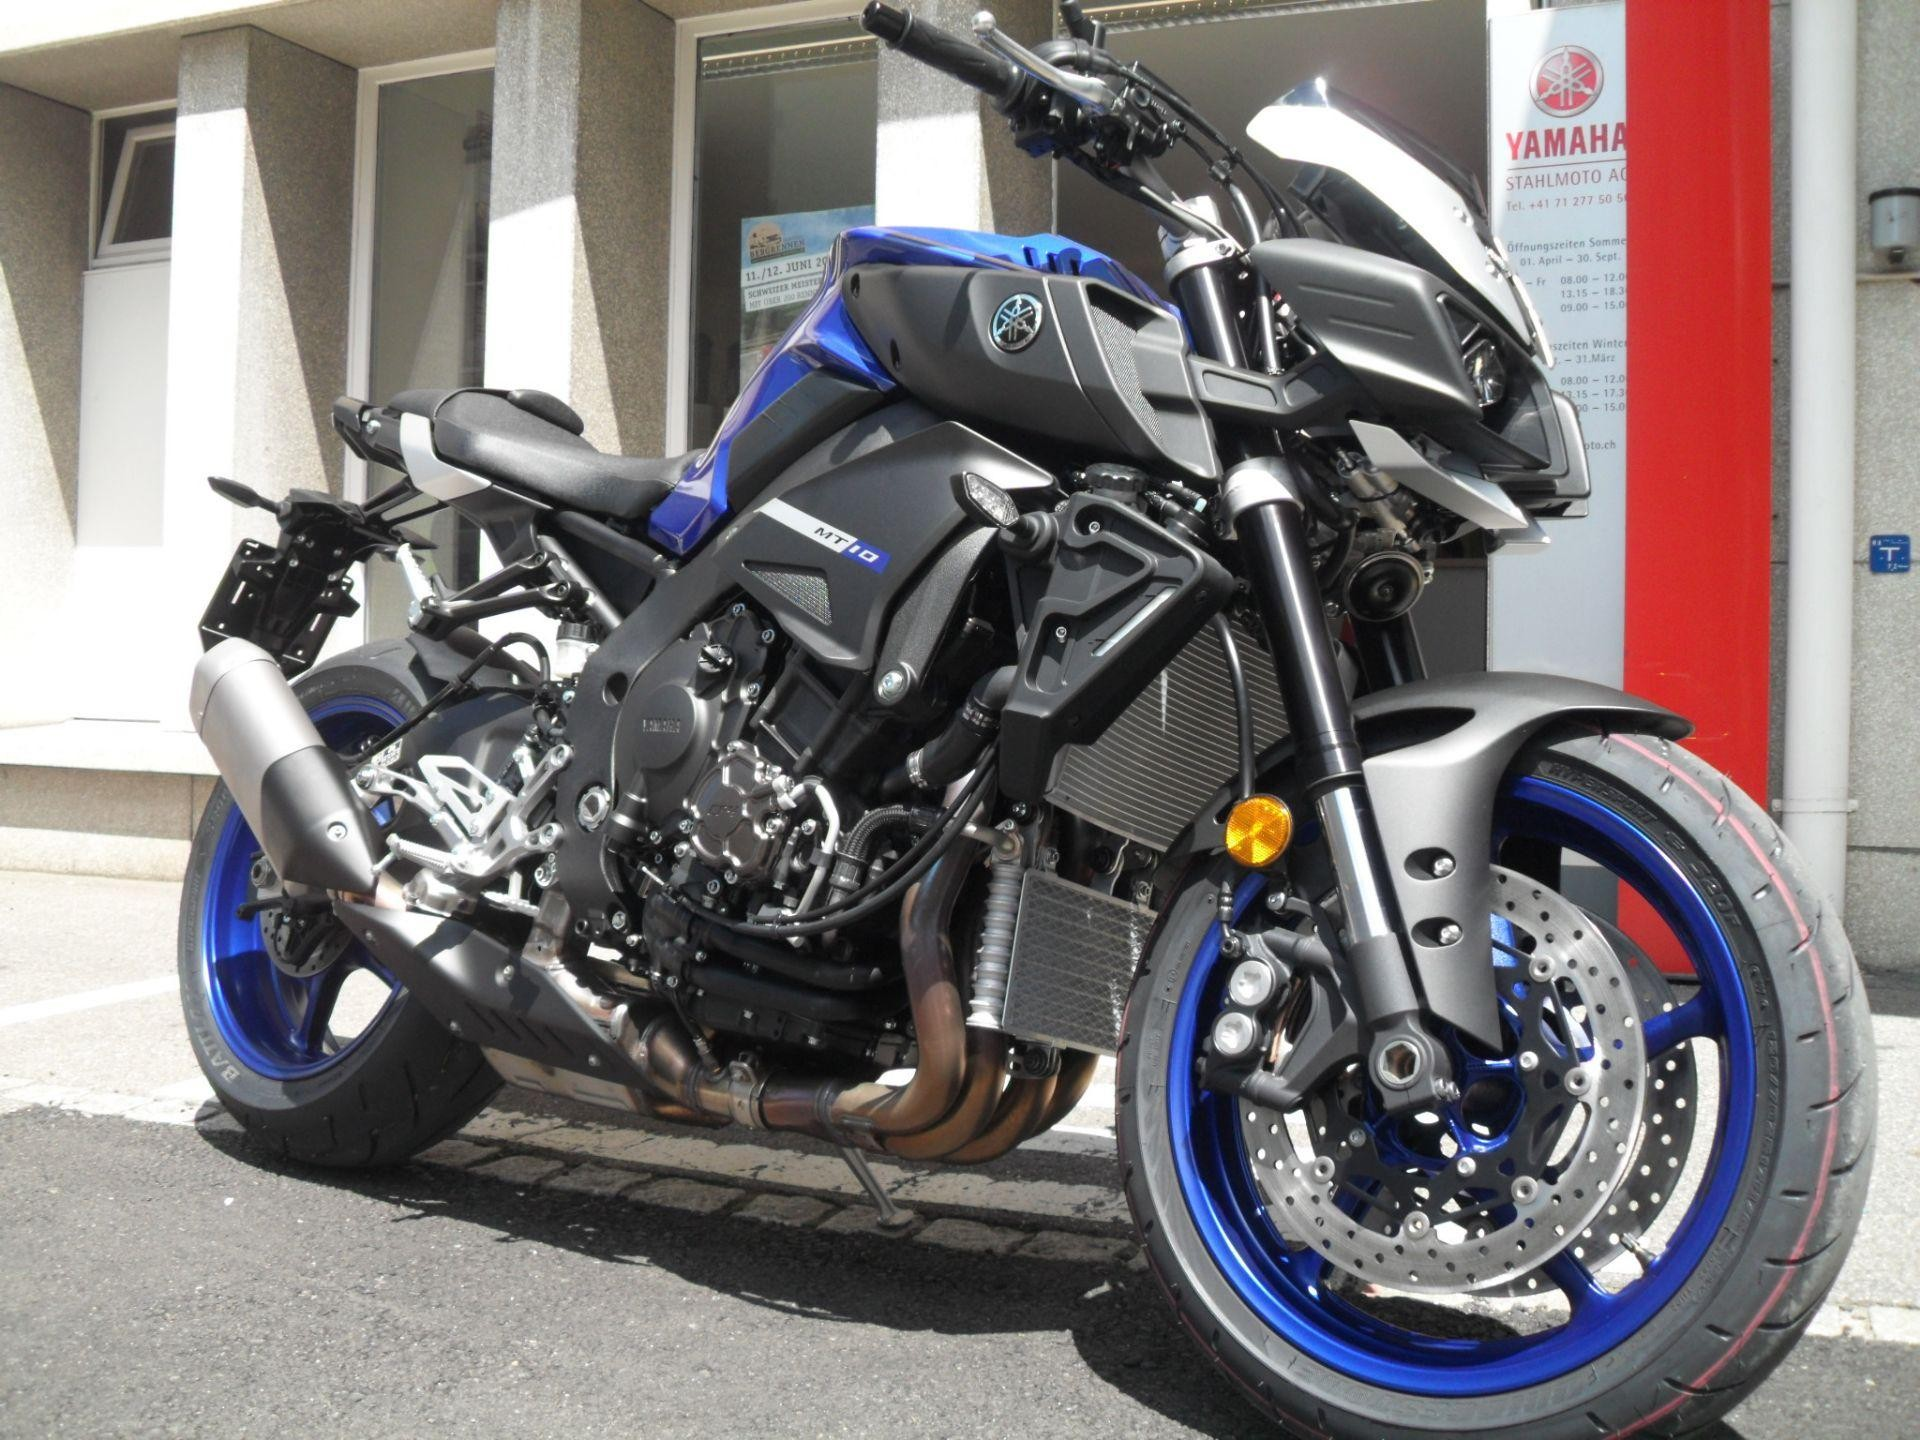 yamaha mt 10 abs das hammer teil stahlmoto ag st gallen. Black Bedroom Furniture Sets. Home Design Ideas